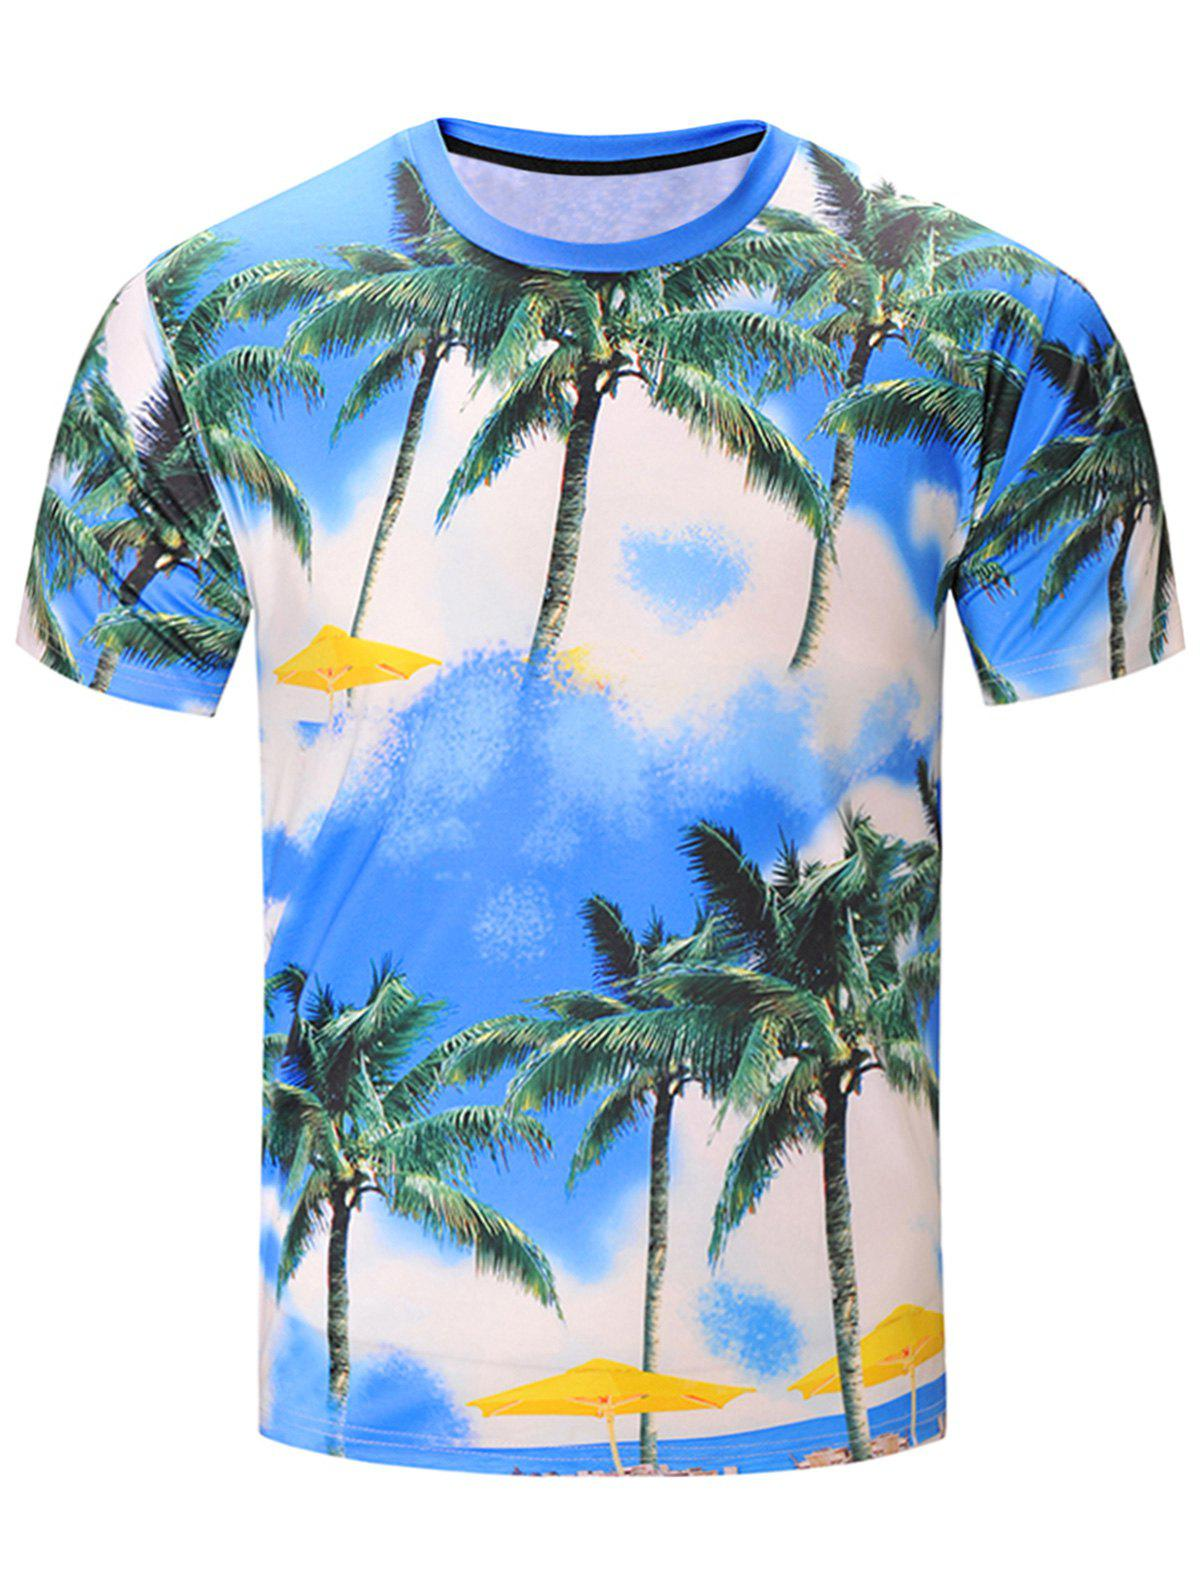 3D Coconut Tree Print Hawaiian Short Sleeve T-Shirt - COLORMIX 2XL